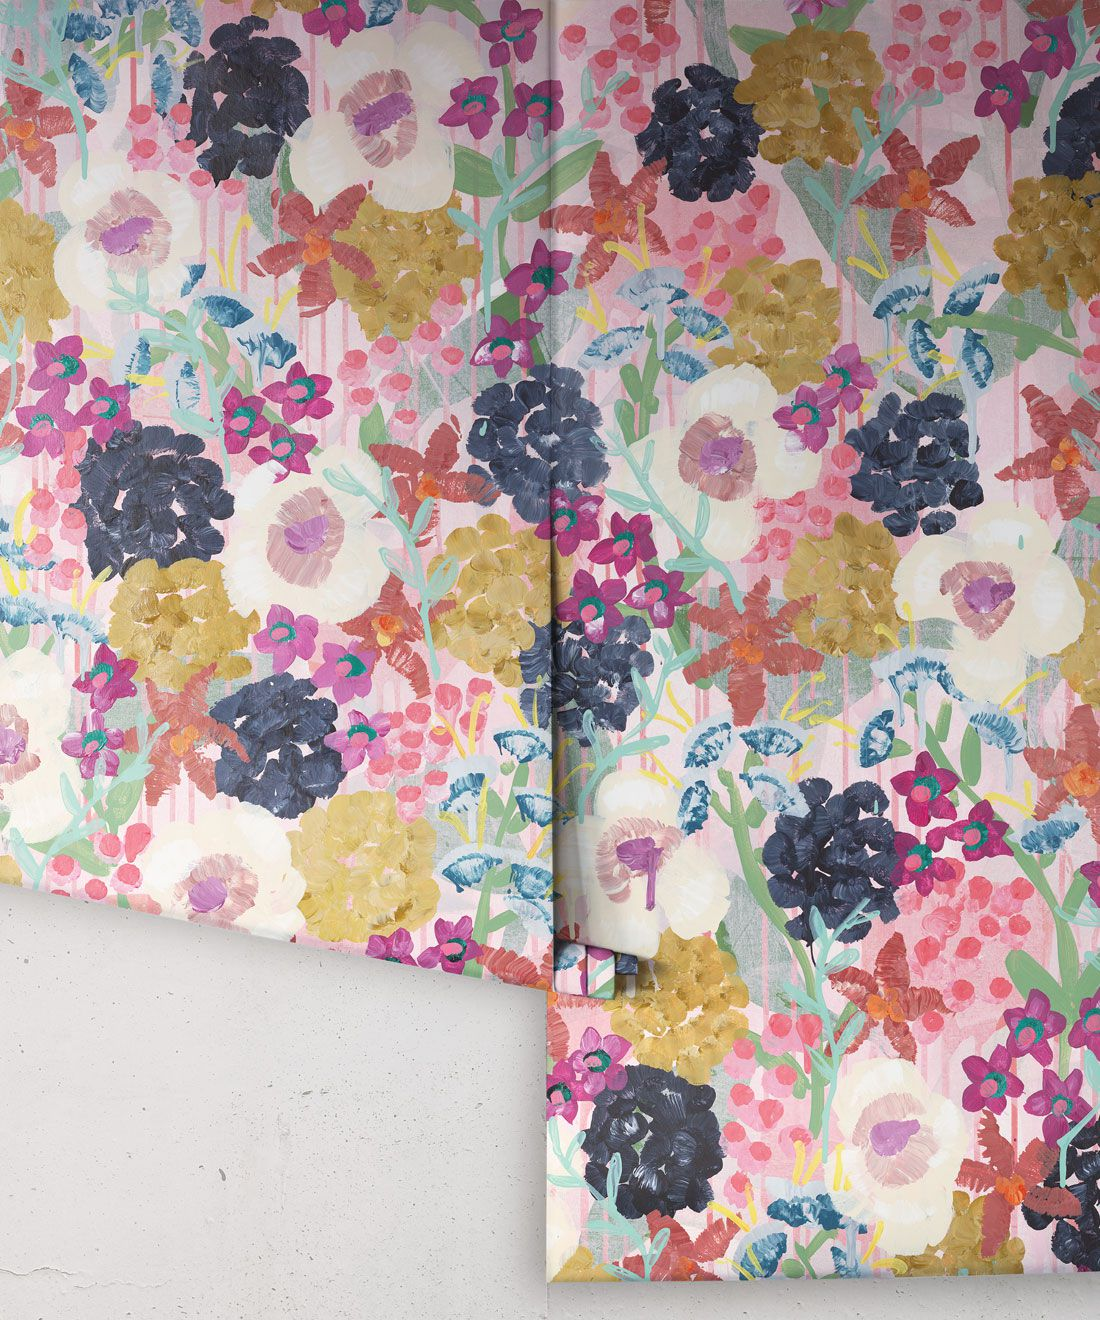 Garden State Wallpaper •Colourful Floral Wallpaper • Tiff Manuell • Abstract Expressionist Wallpaper • Rolls